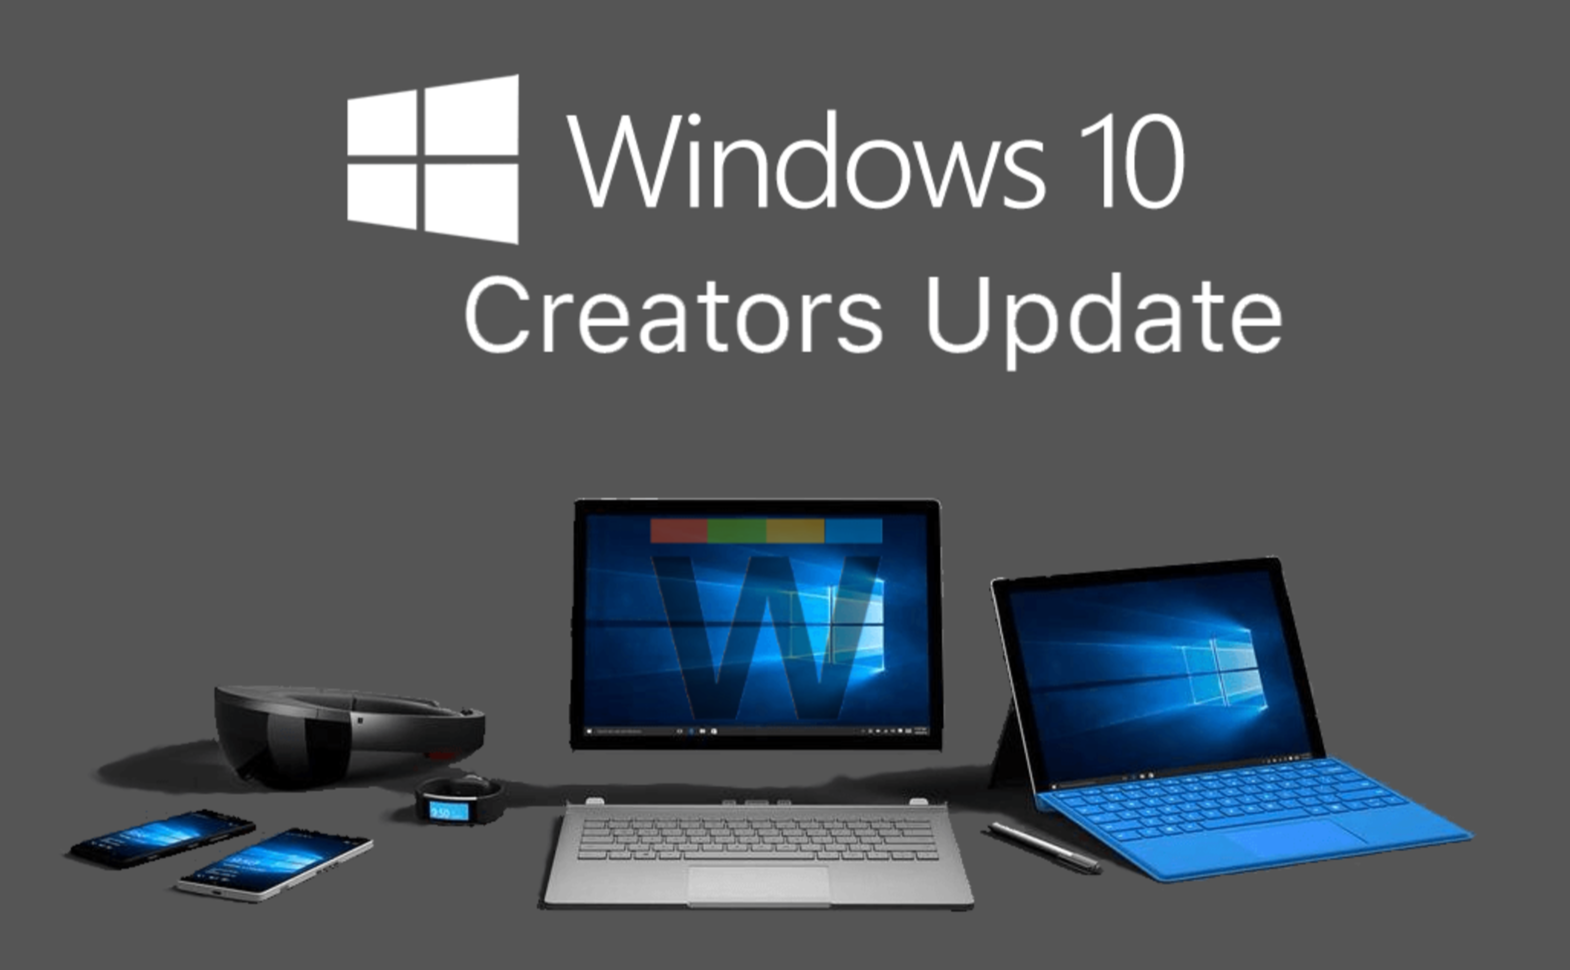 Microsoft Confirms Windows 10 Creators Update Release Date